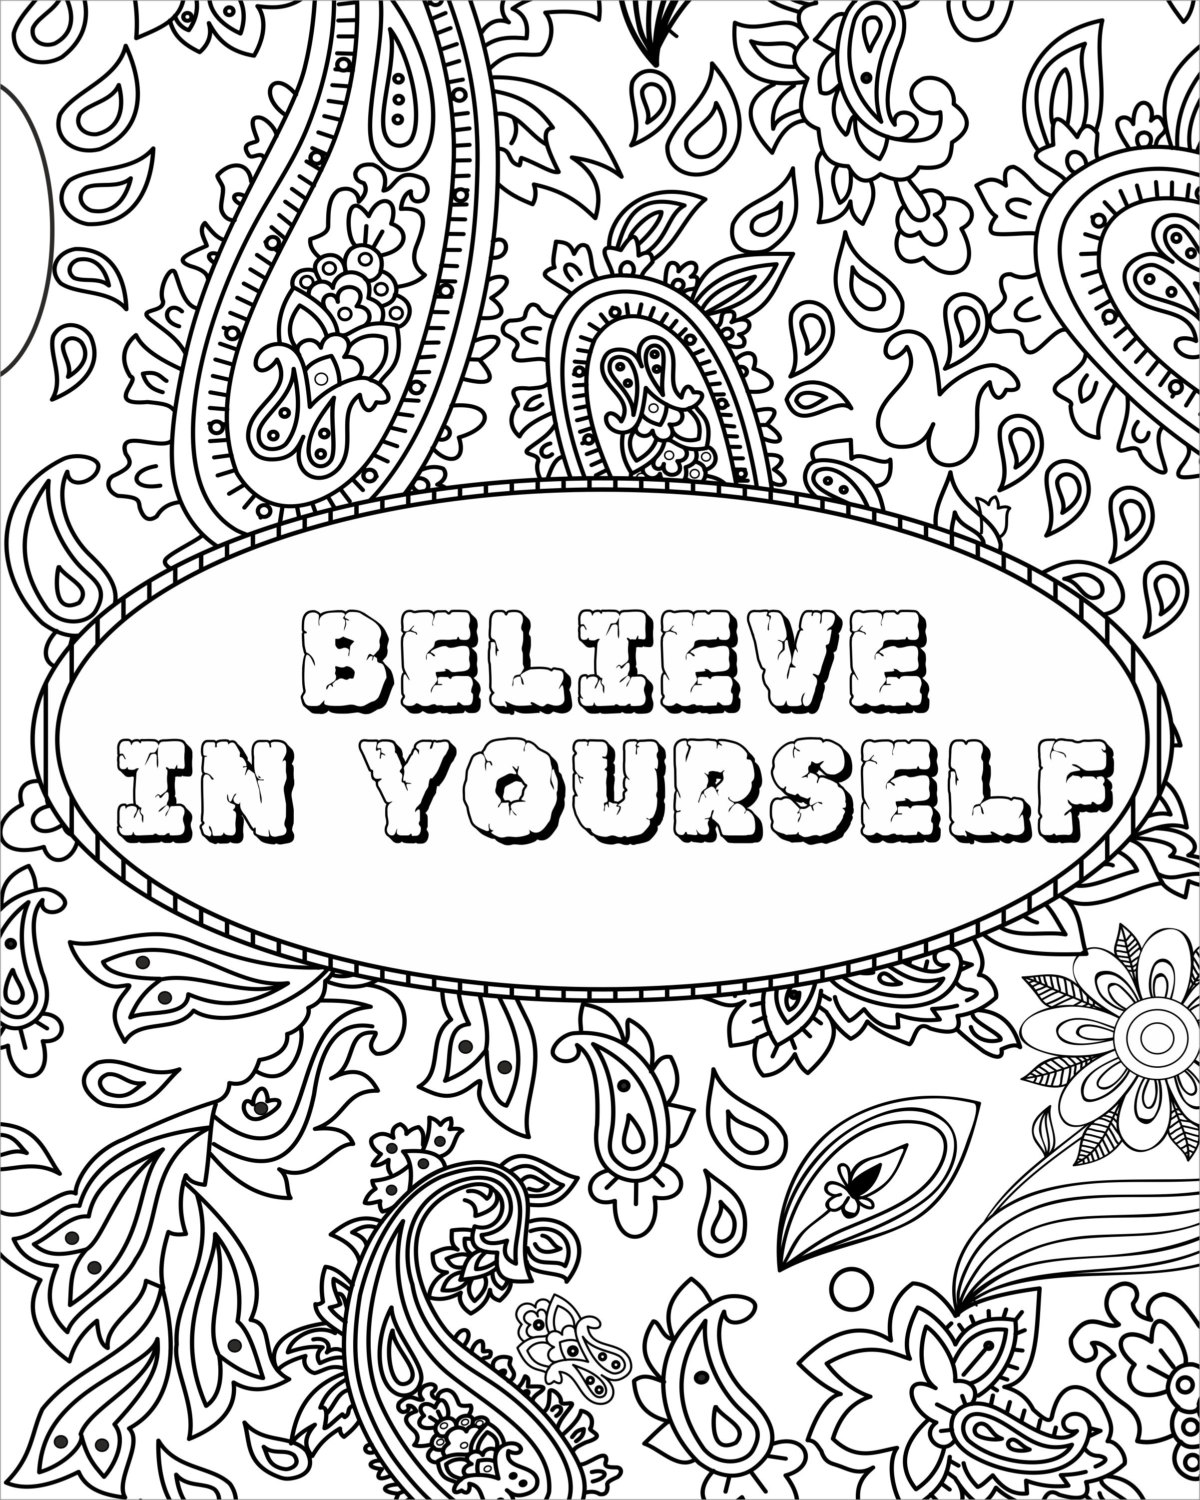 1200x1500 Fancy Design Inspirational Quotes Coloring Pages Adult Page Funny